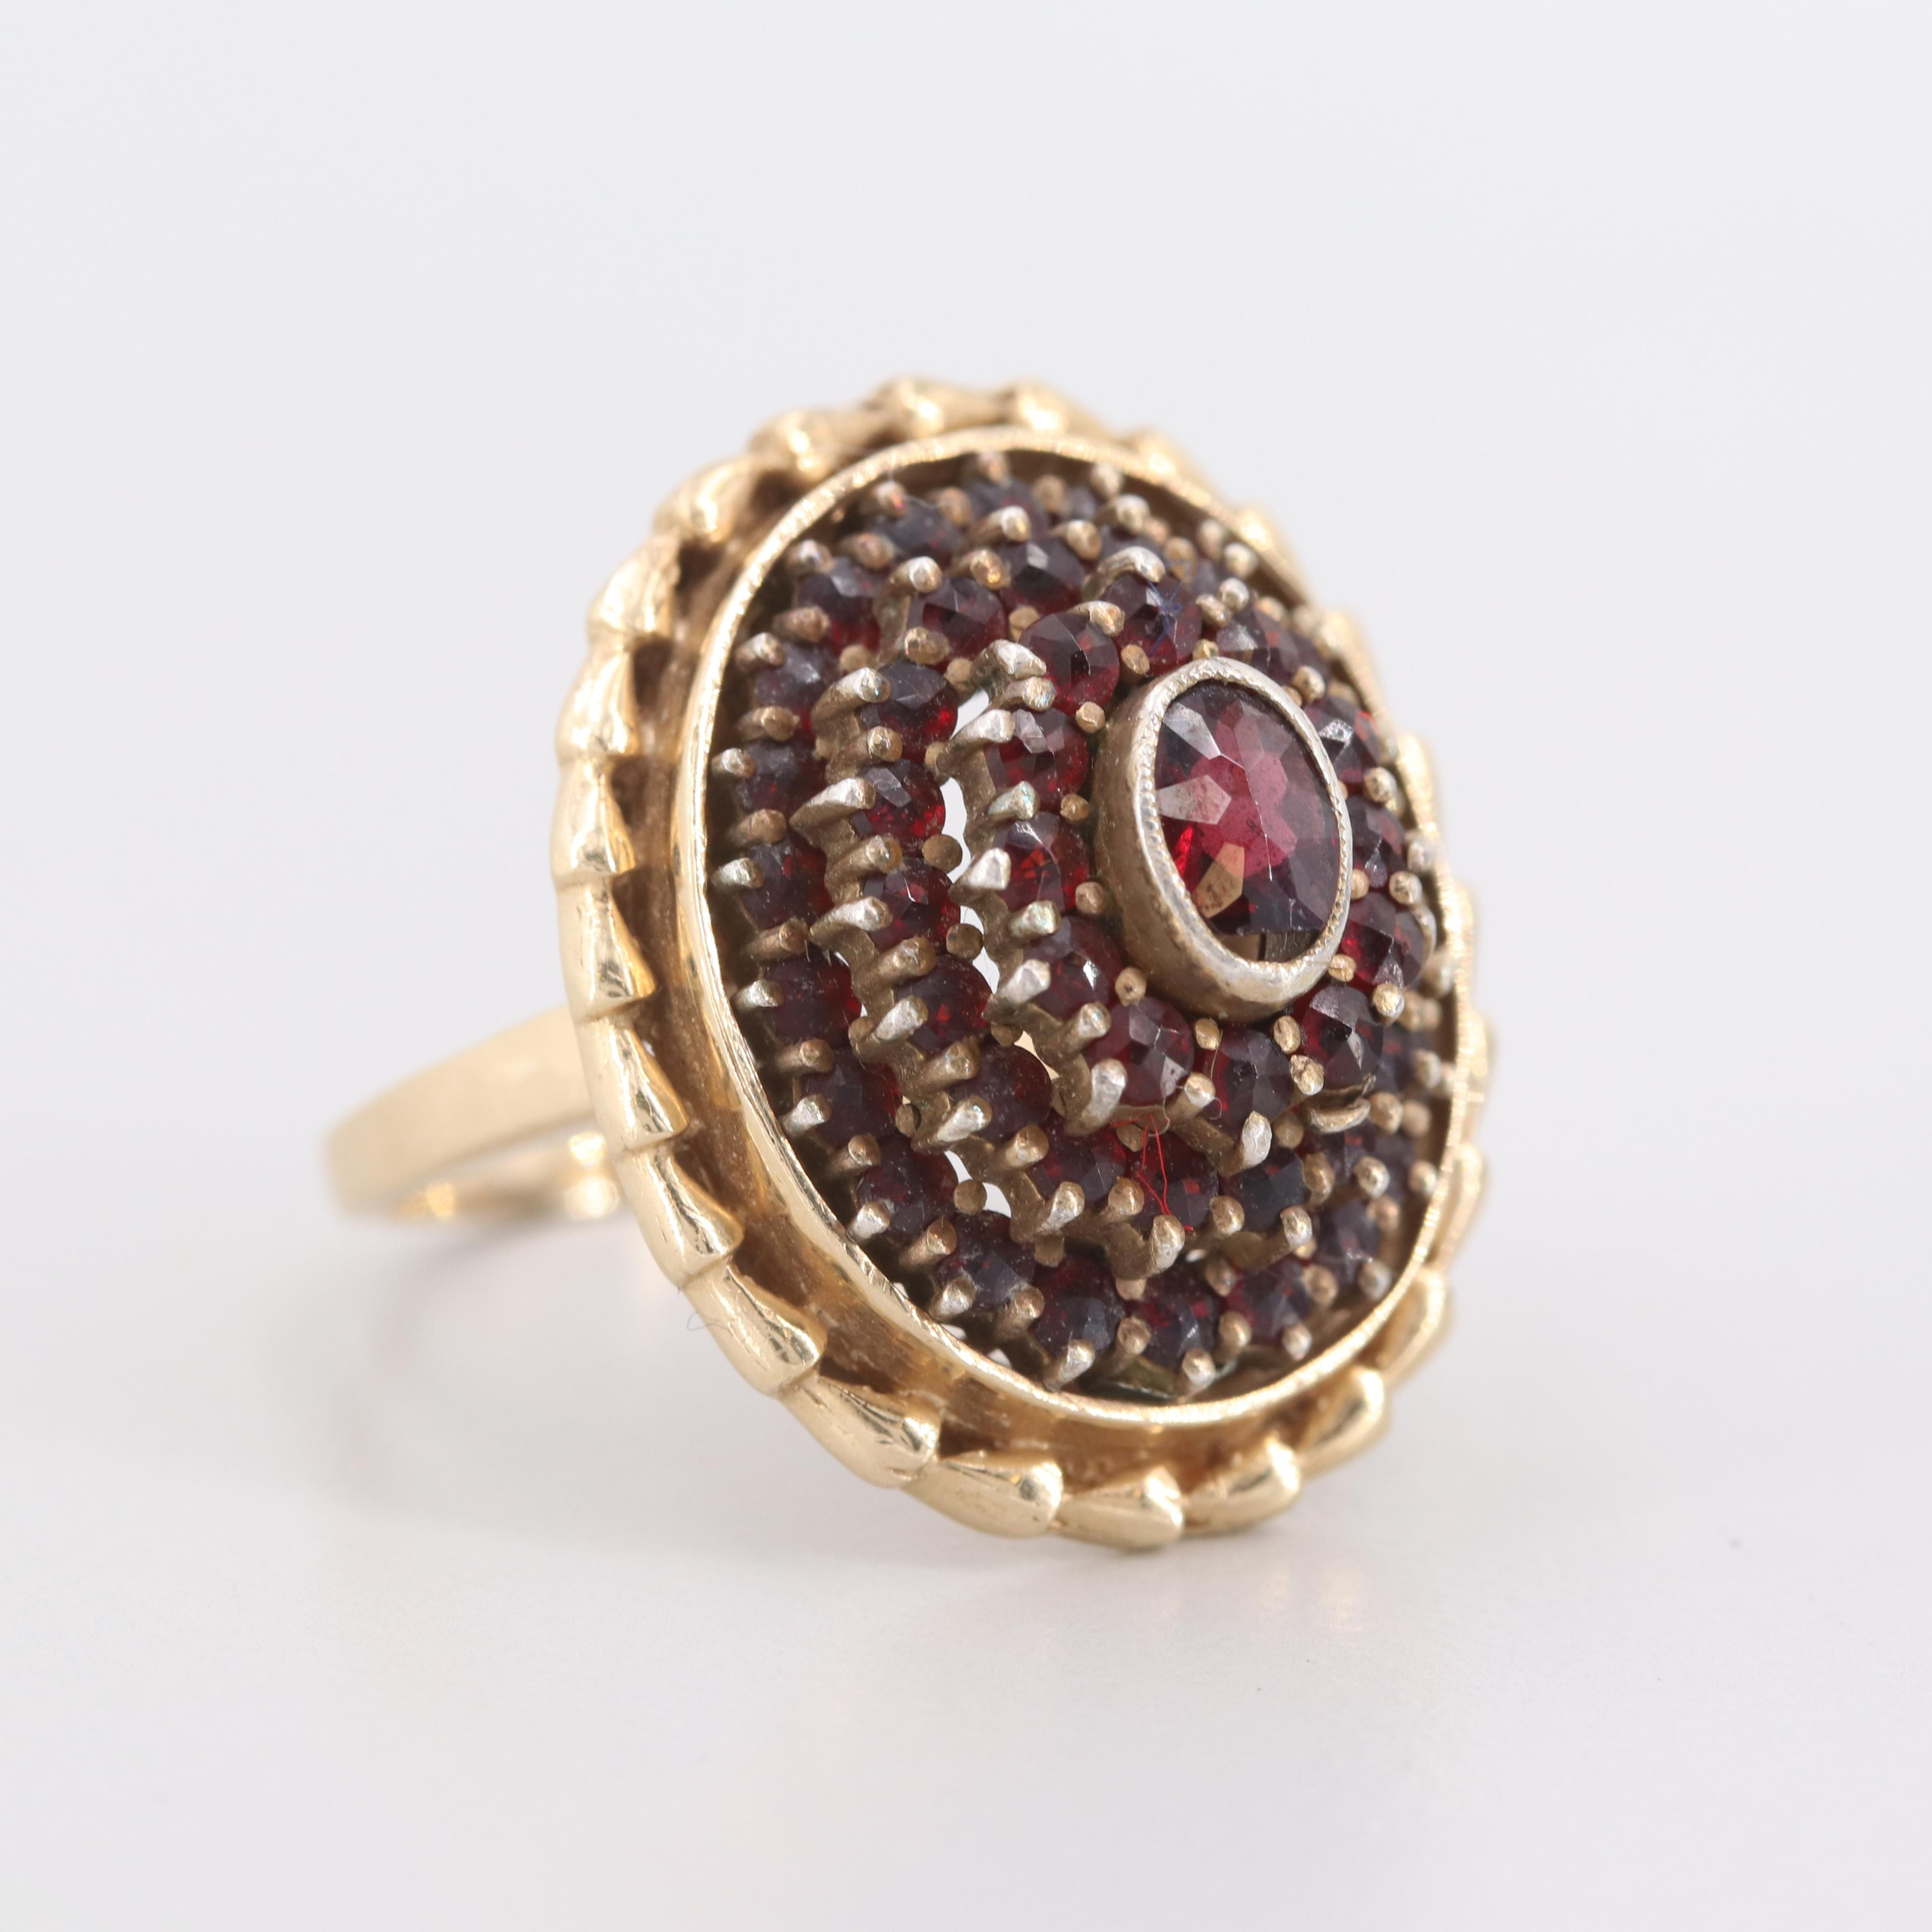 14K Yellow Gold Garnet Ring with 800 Silver Top Bezel